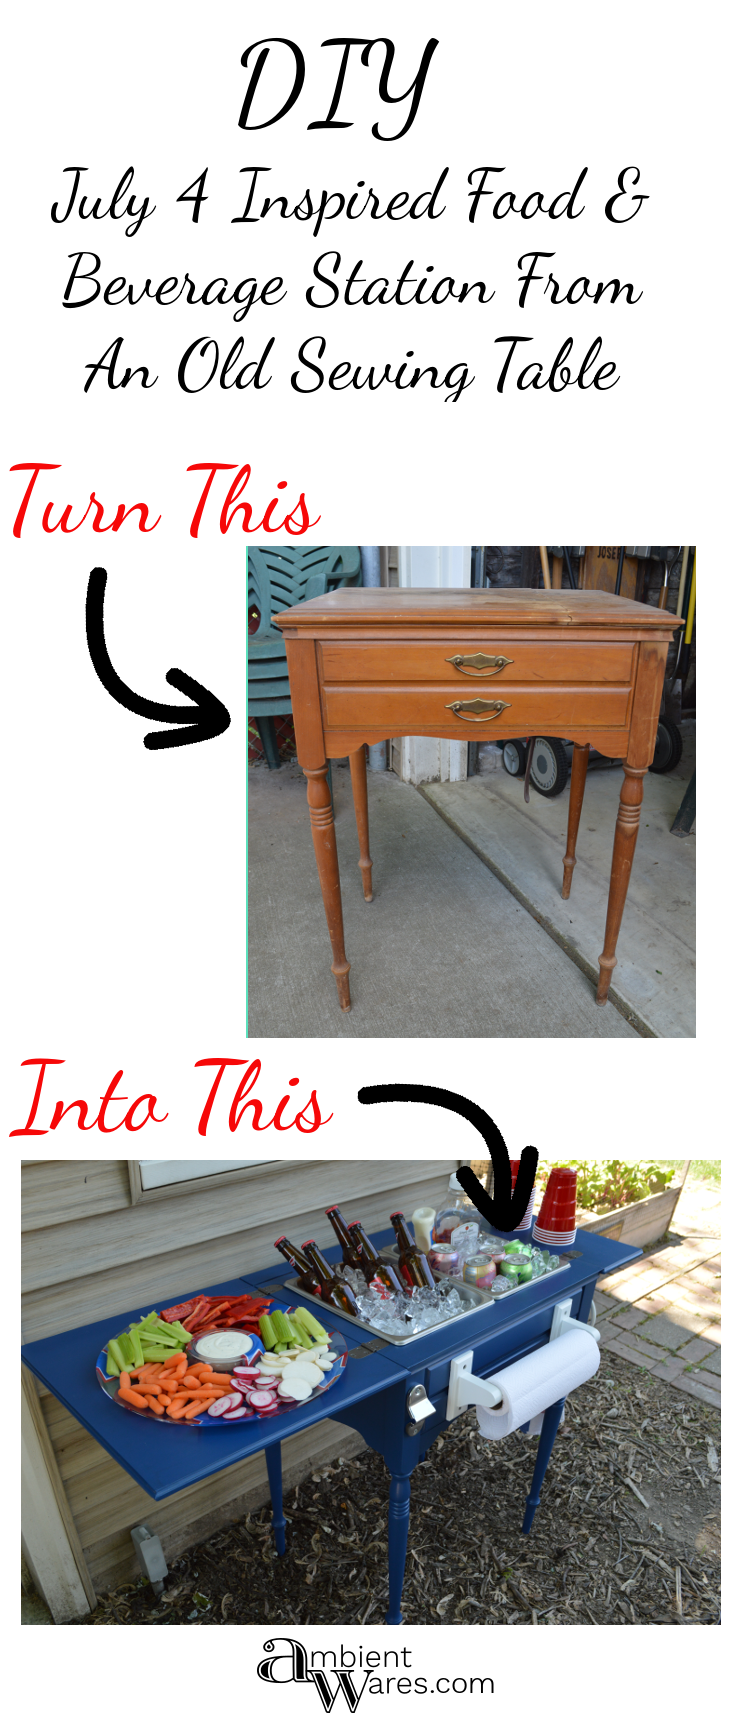 16 Upcycled Furniture Ideas to Give Old Furnitures New ...